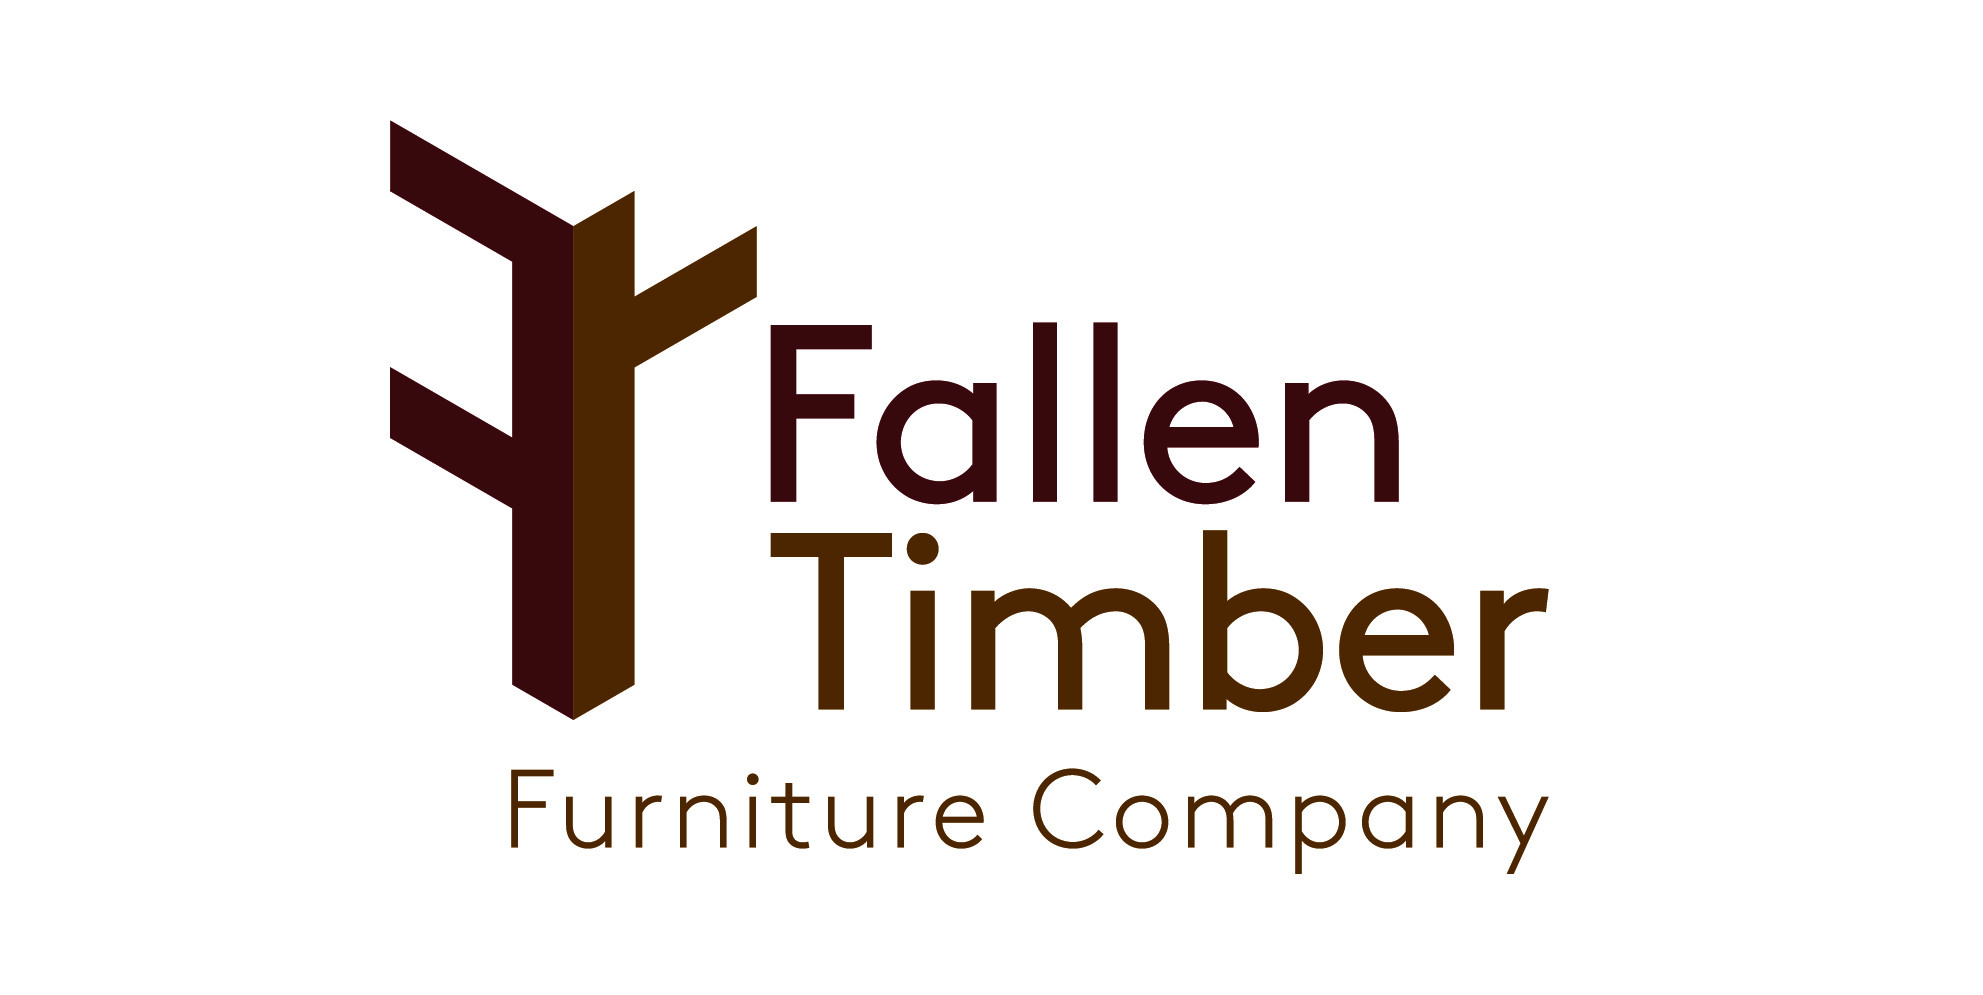 Fallen Timber Furniture Company